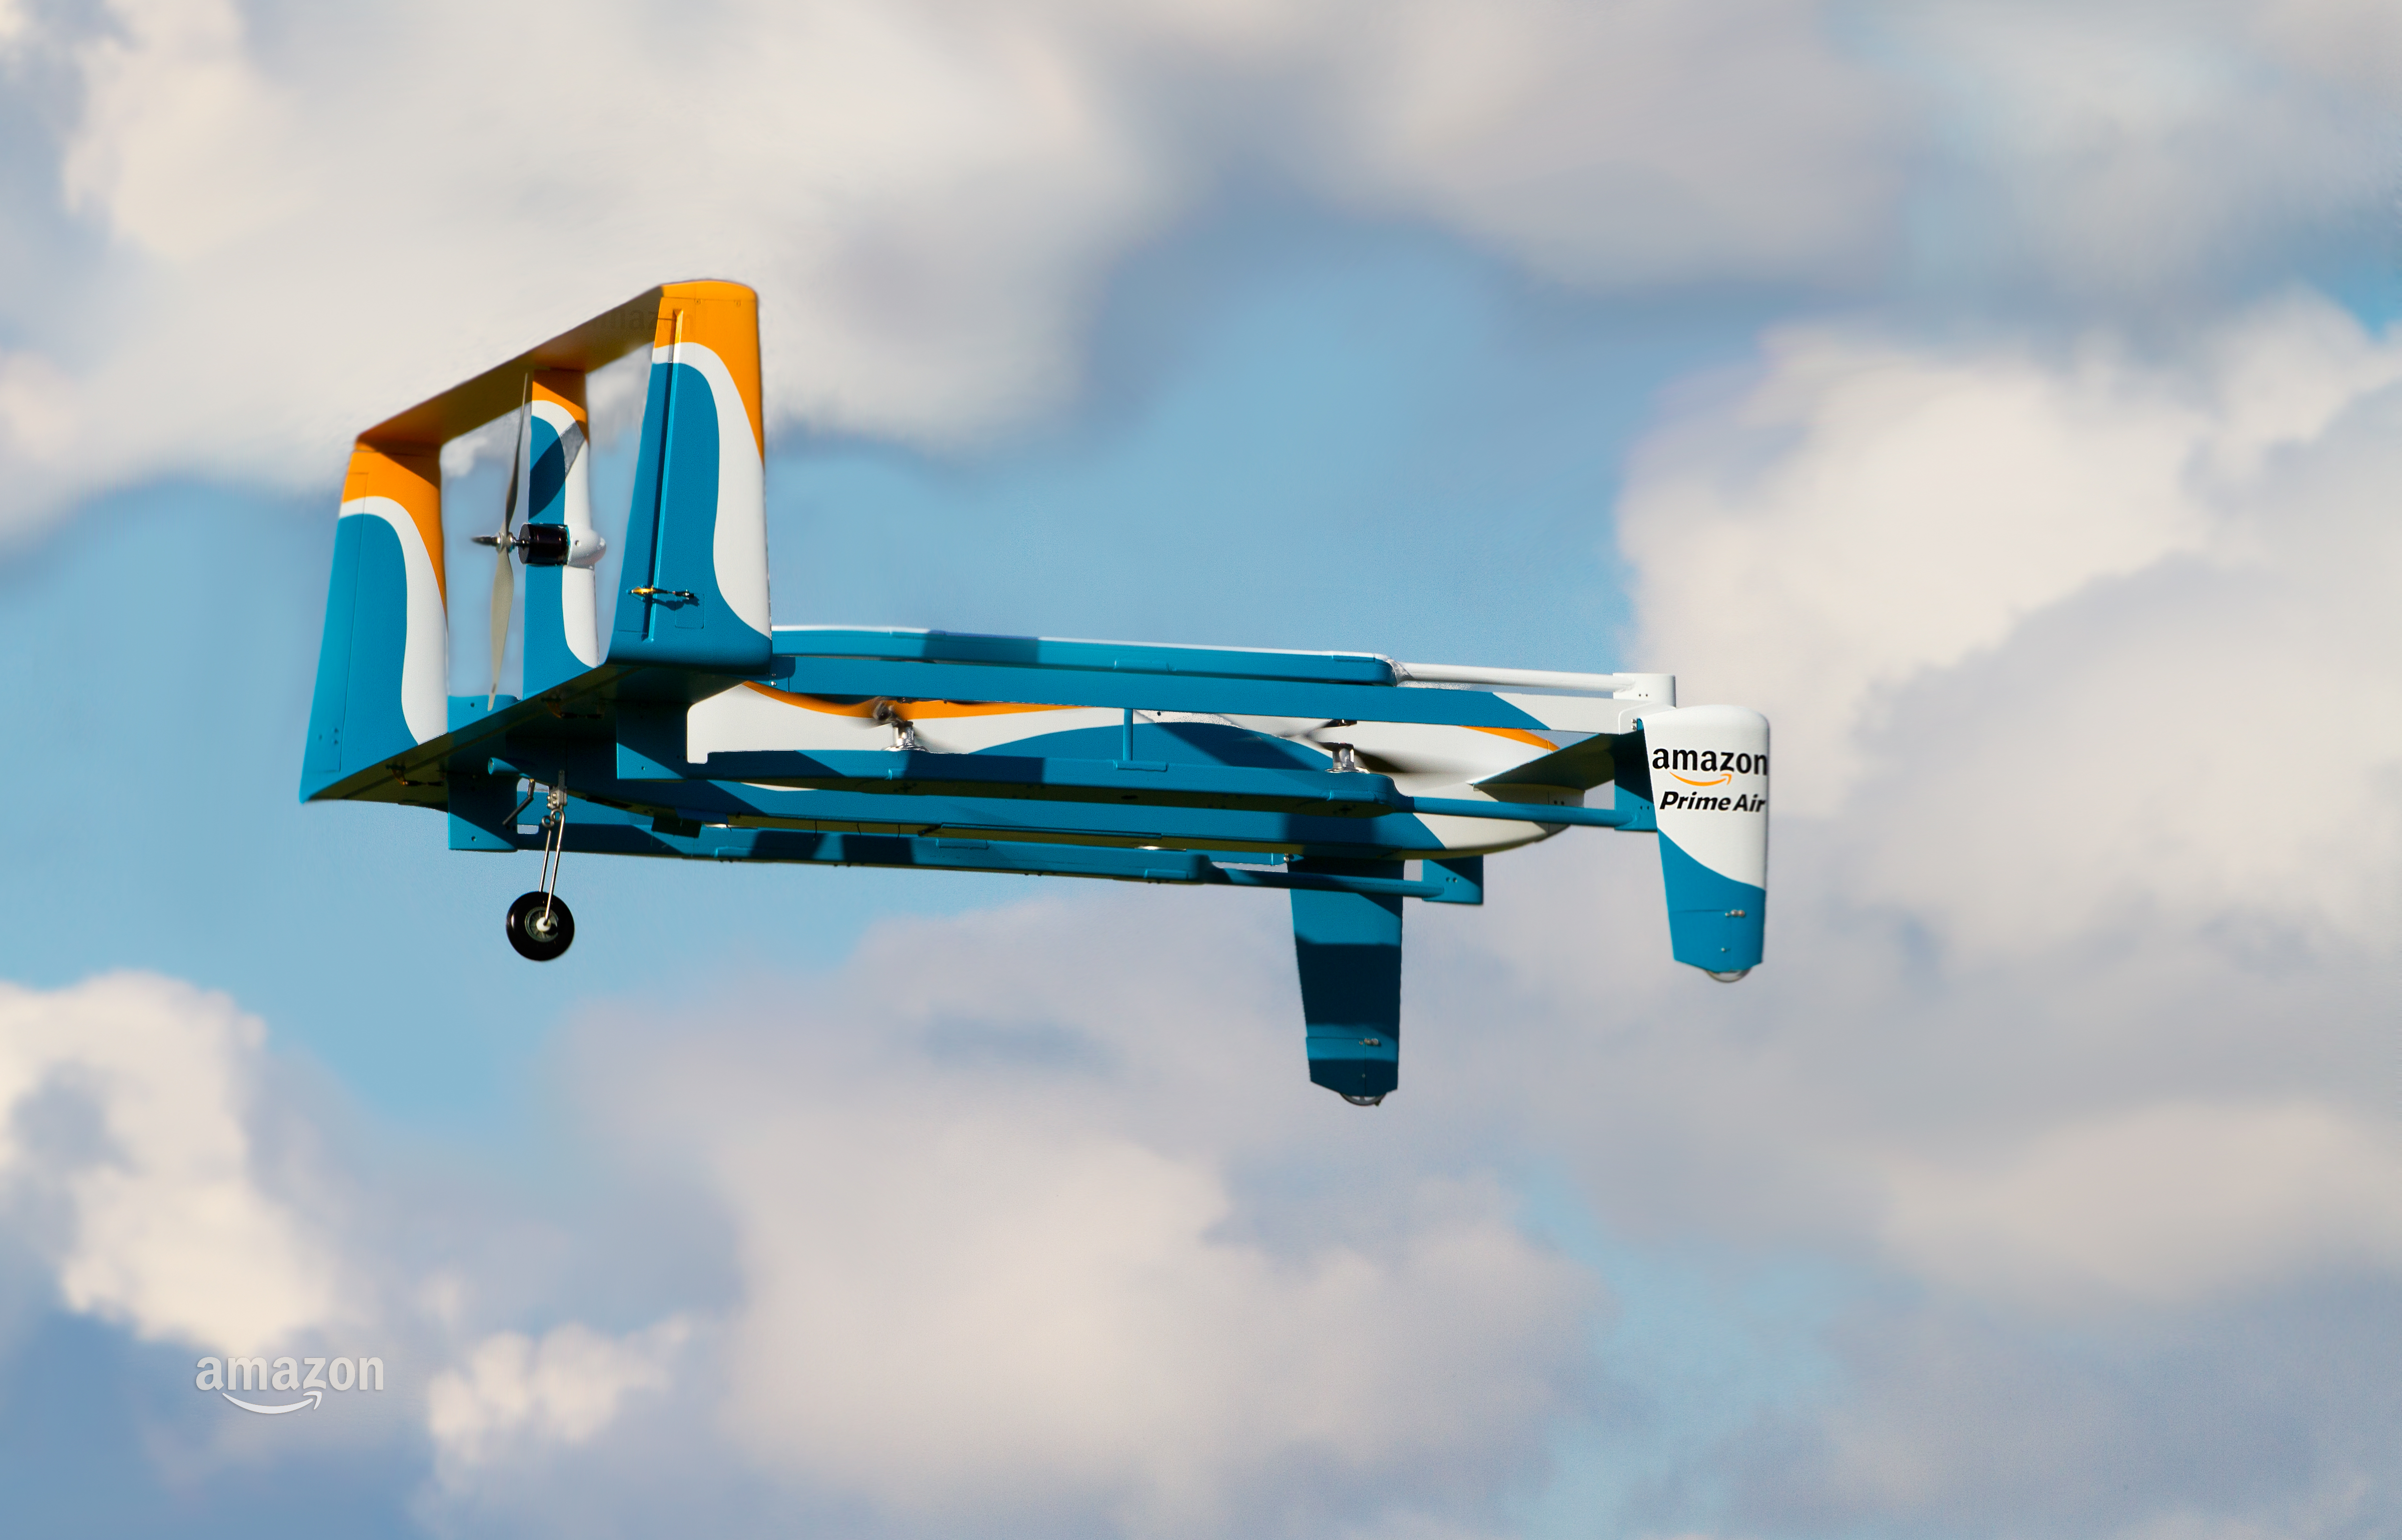 Amazon Claims its First Successful Drone Delivery